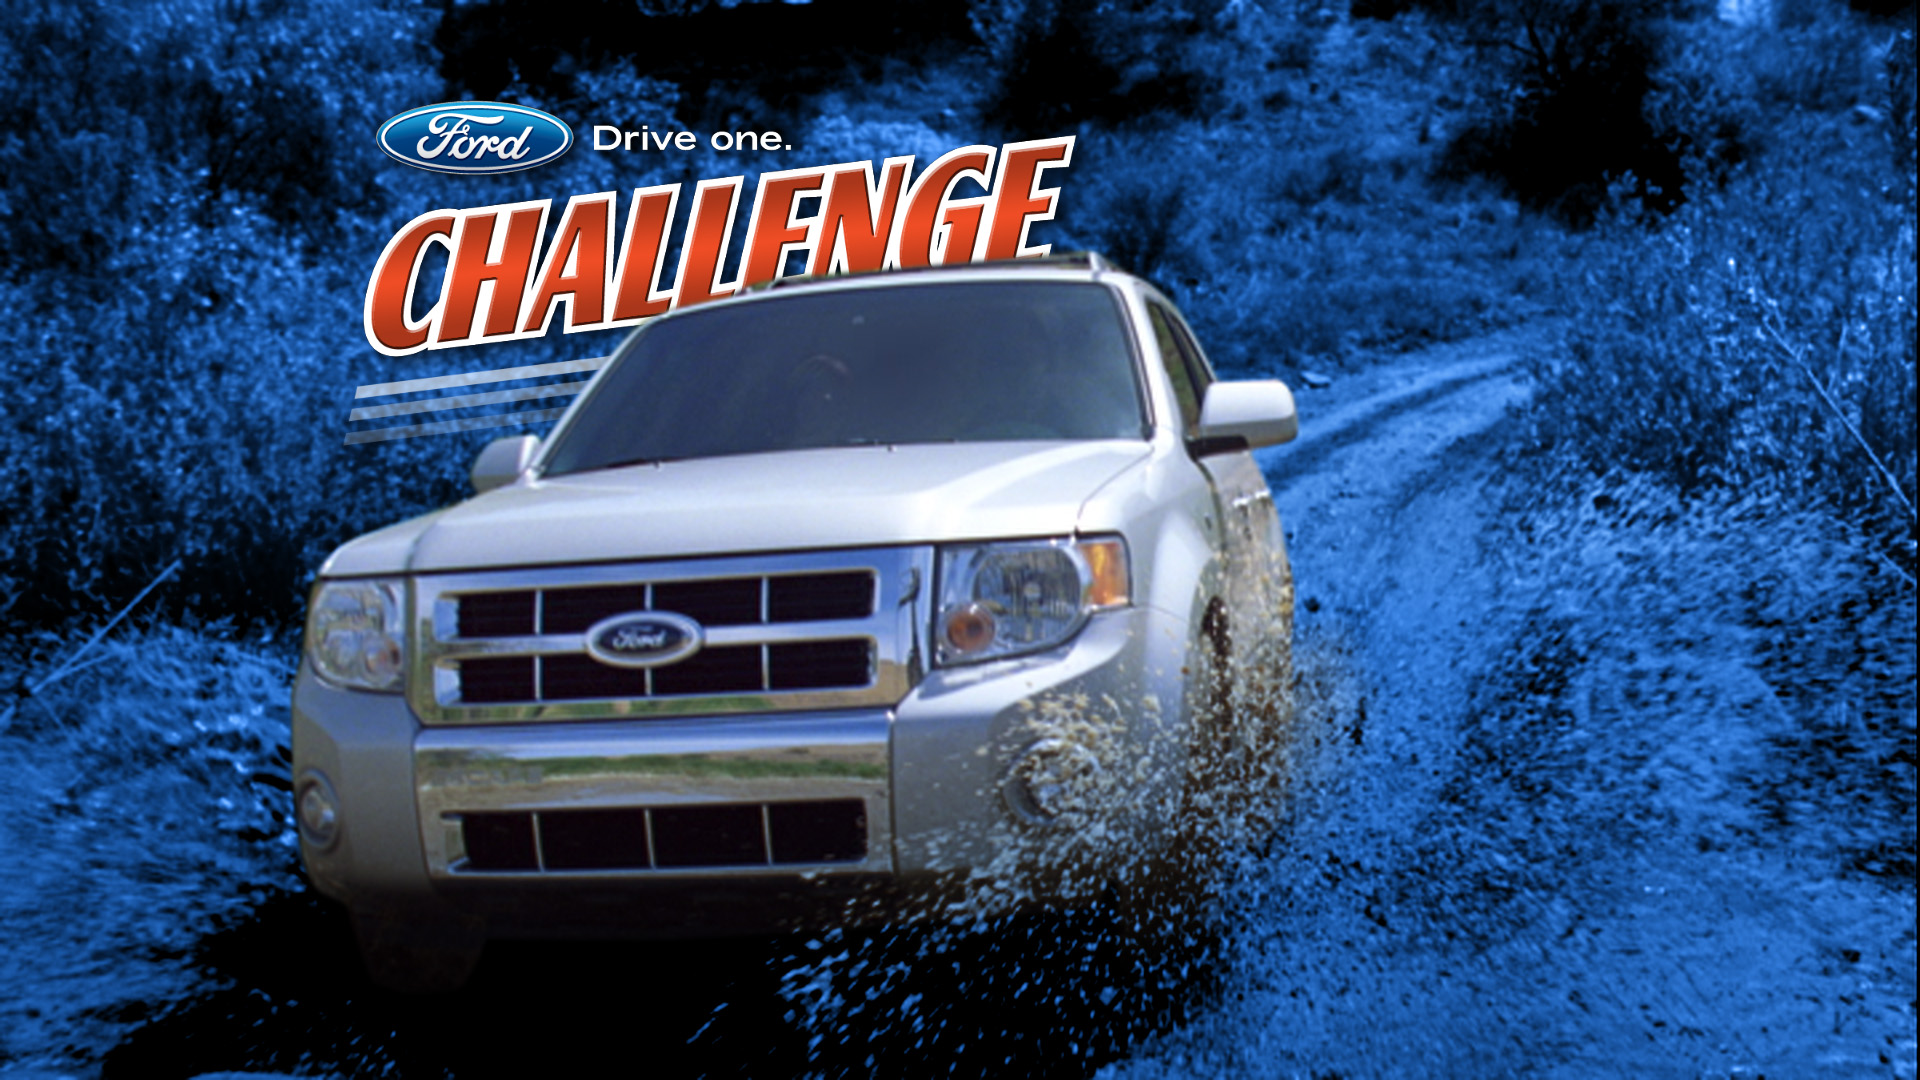 ford_drive_one_challenge_trucks_image03